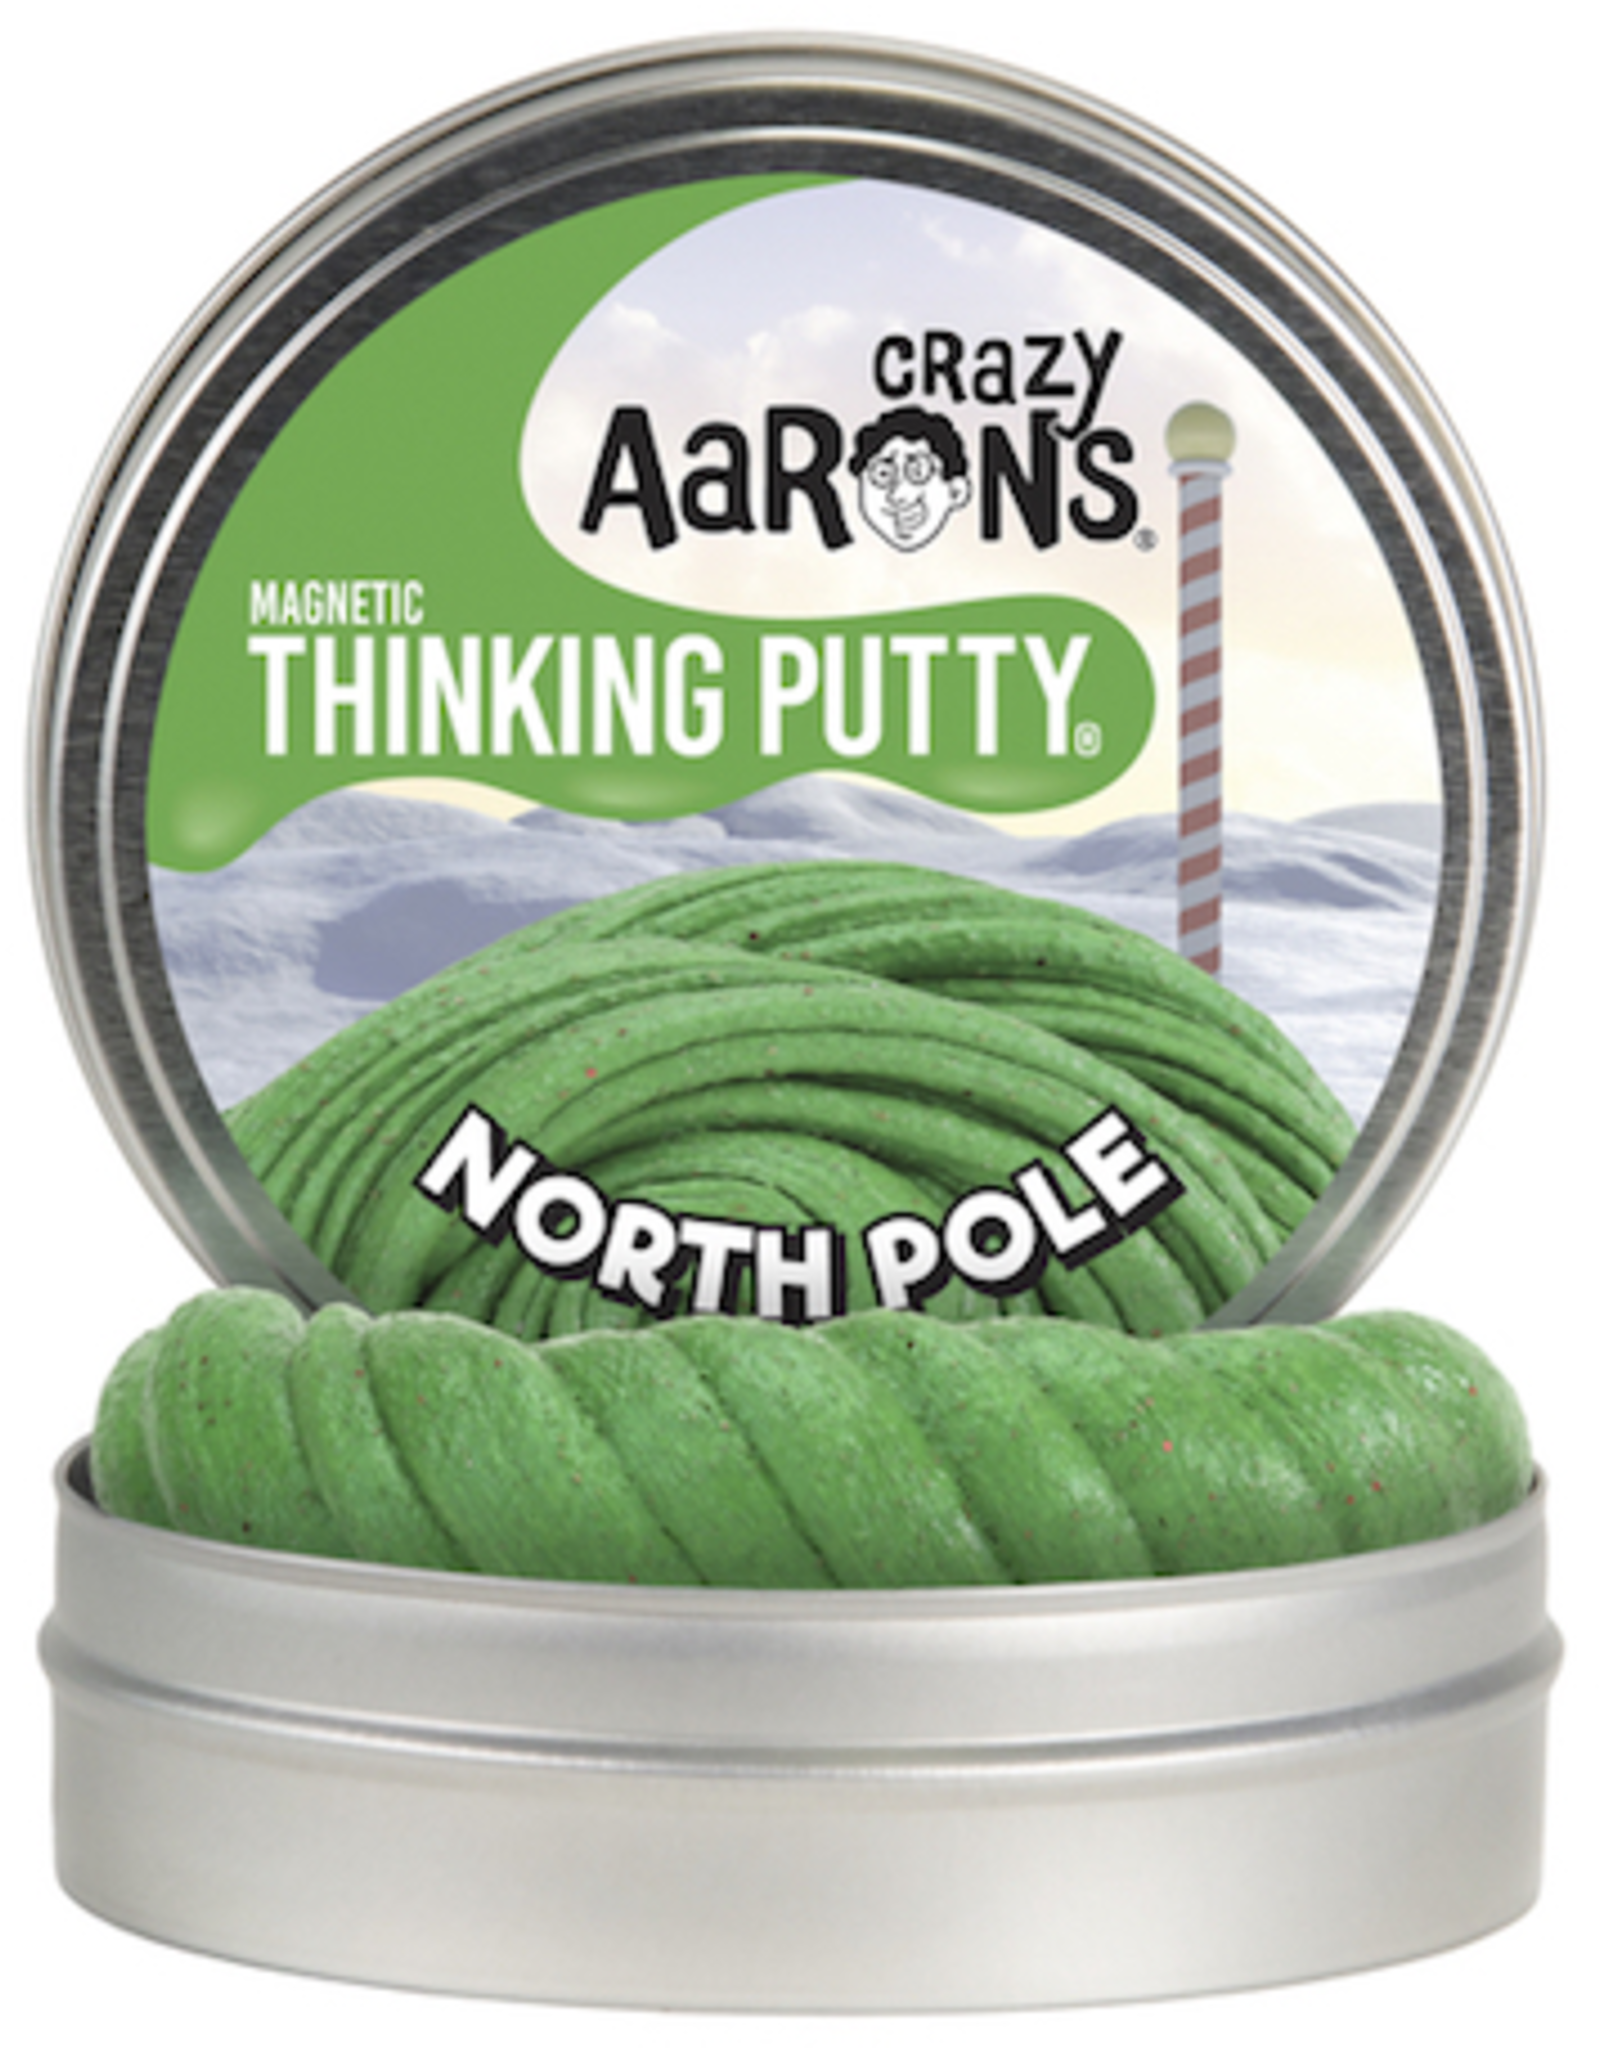 "Crazy Aaron's Thinking Putty 4"" North Pole Super Magnetic"